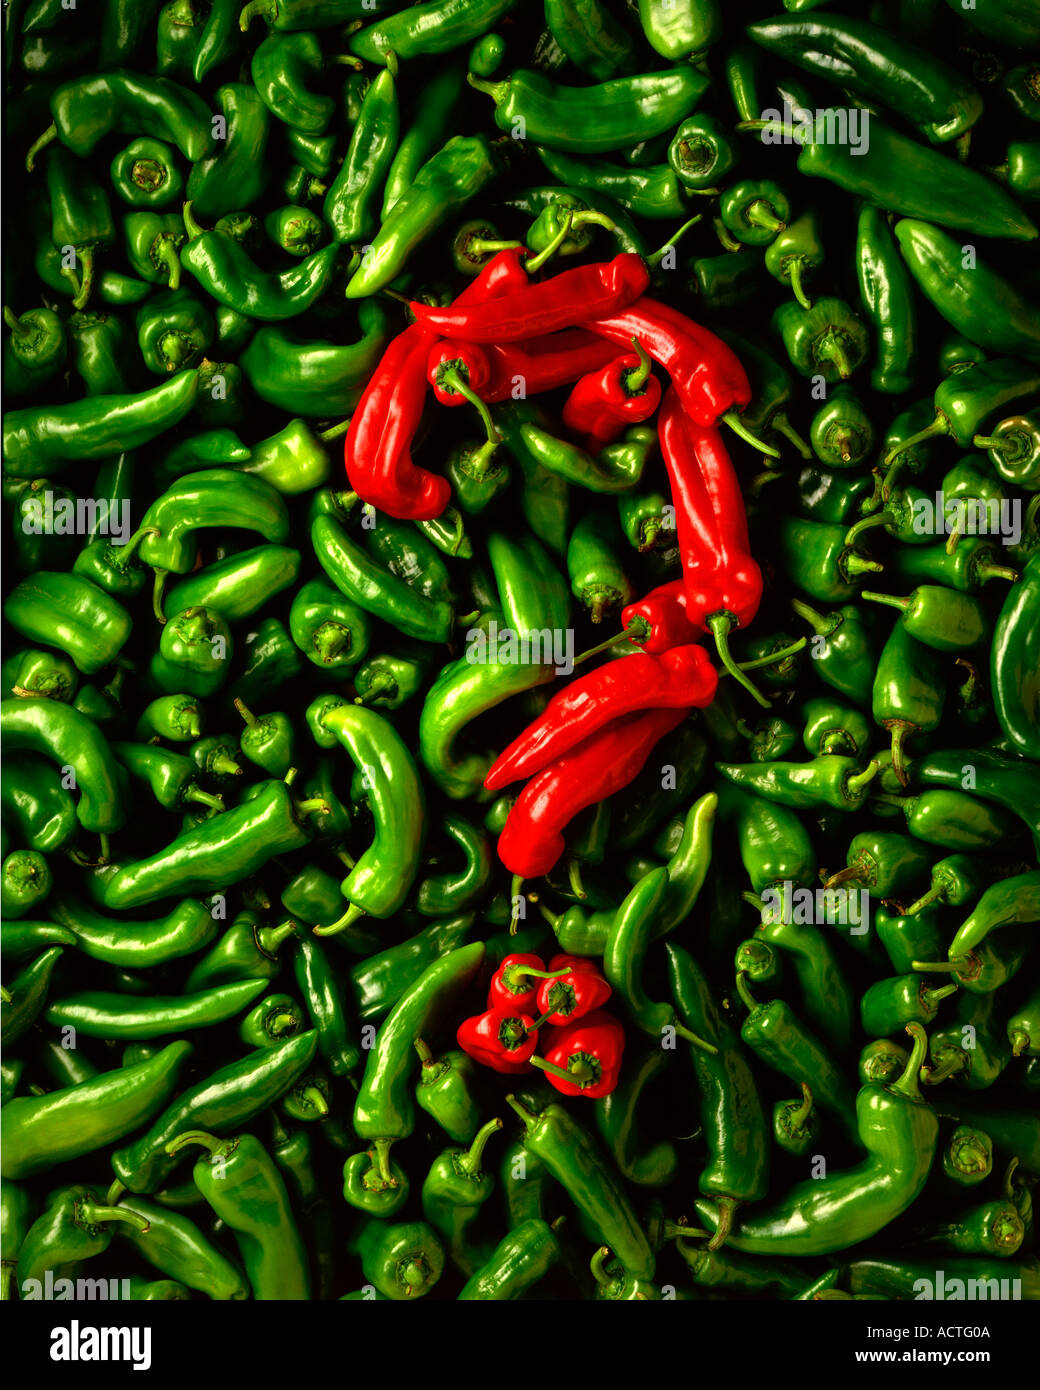 Peppers question mark using both red and green peppers - Stock Image